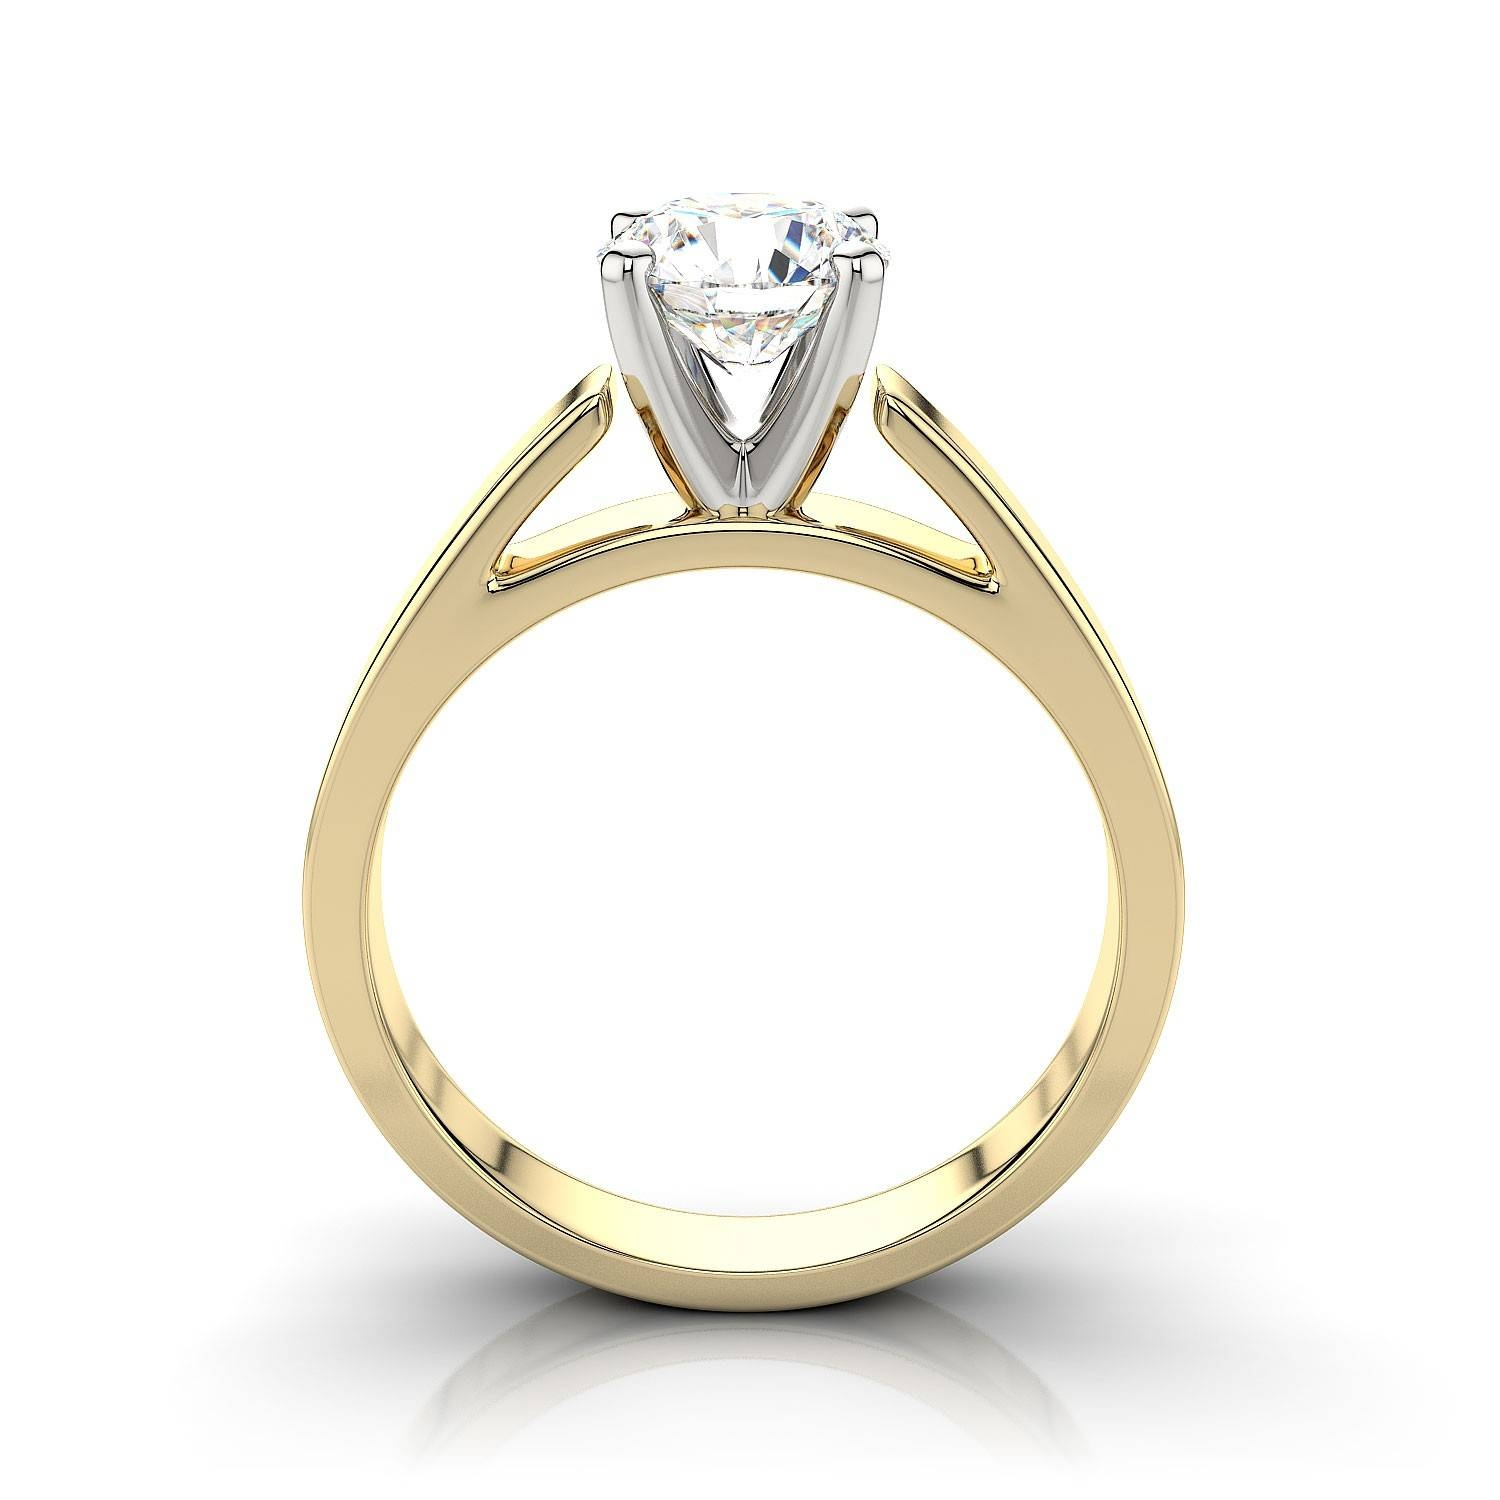 Tapered Cathedral Solitaire Engagement Ring – 18K Yellow Gold Intended For Diamond Wedding Rings Settings (View 15 of 15)